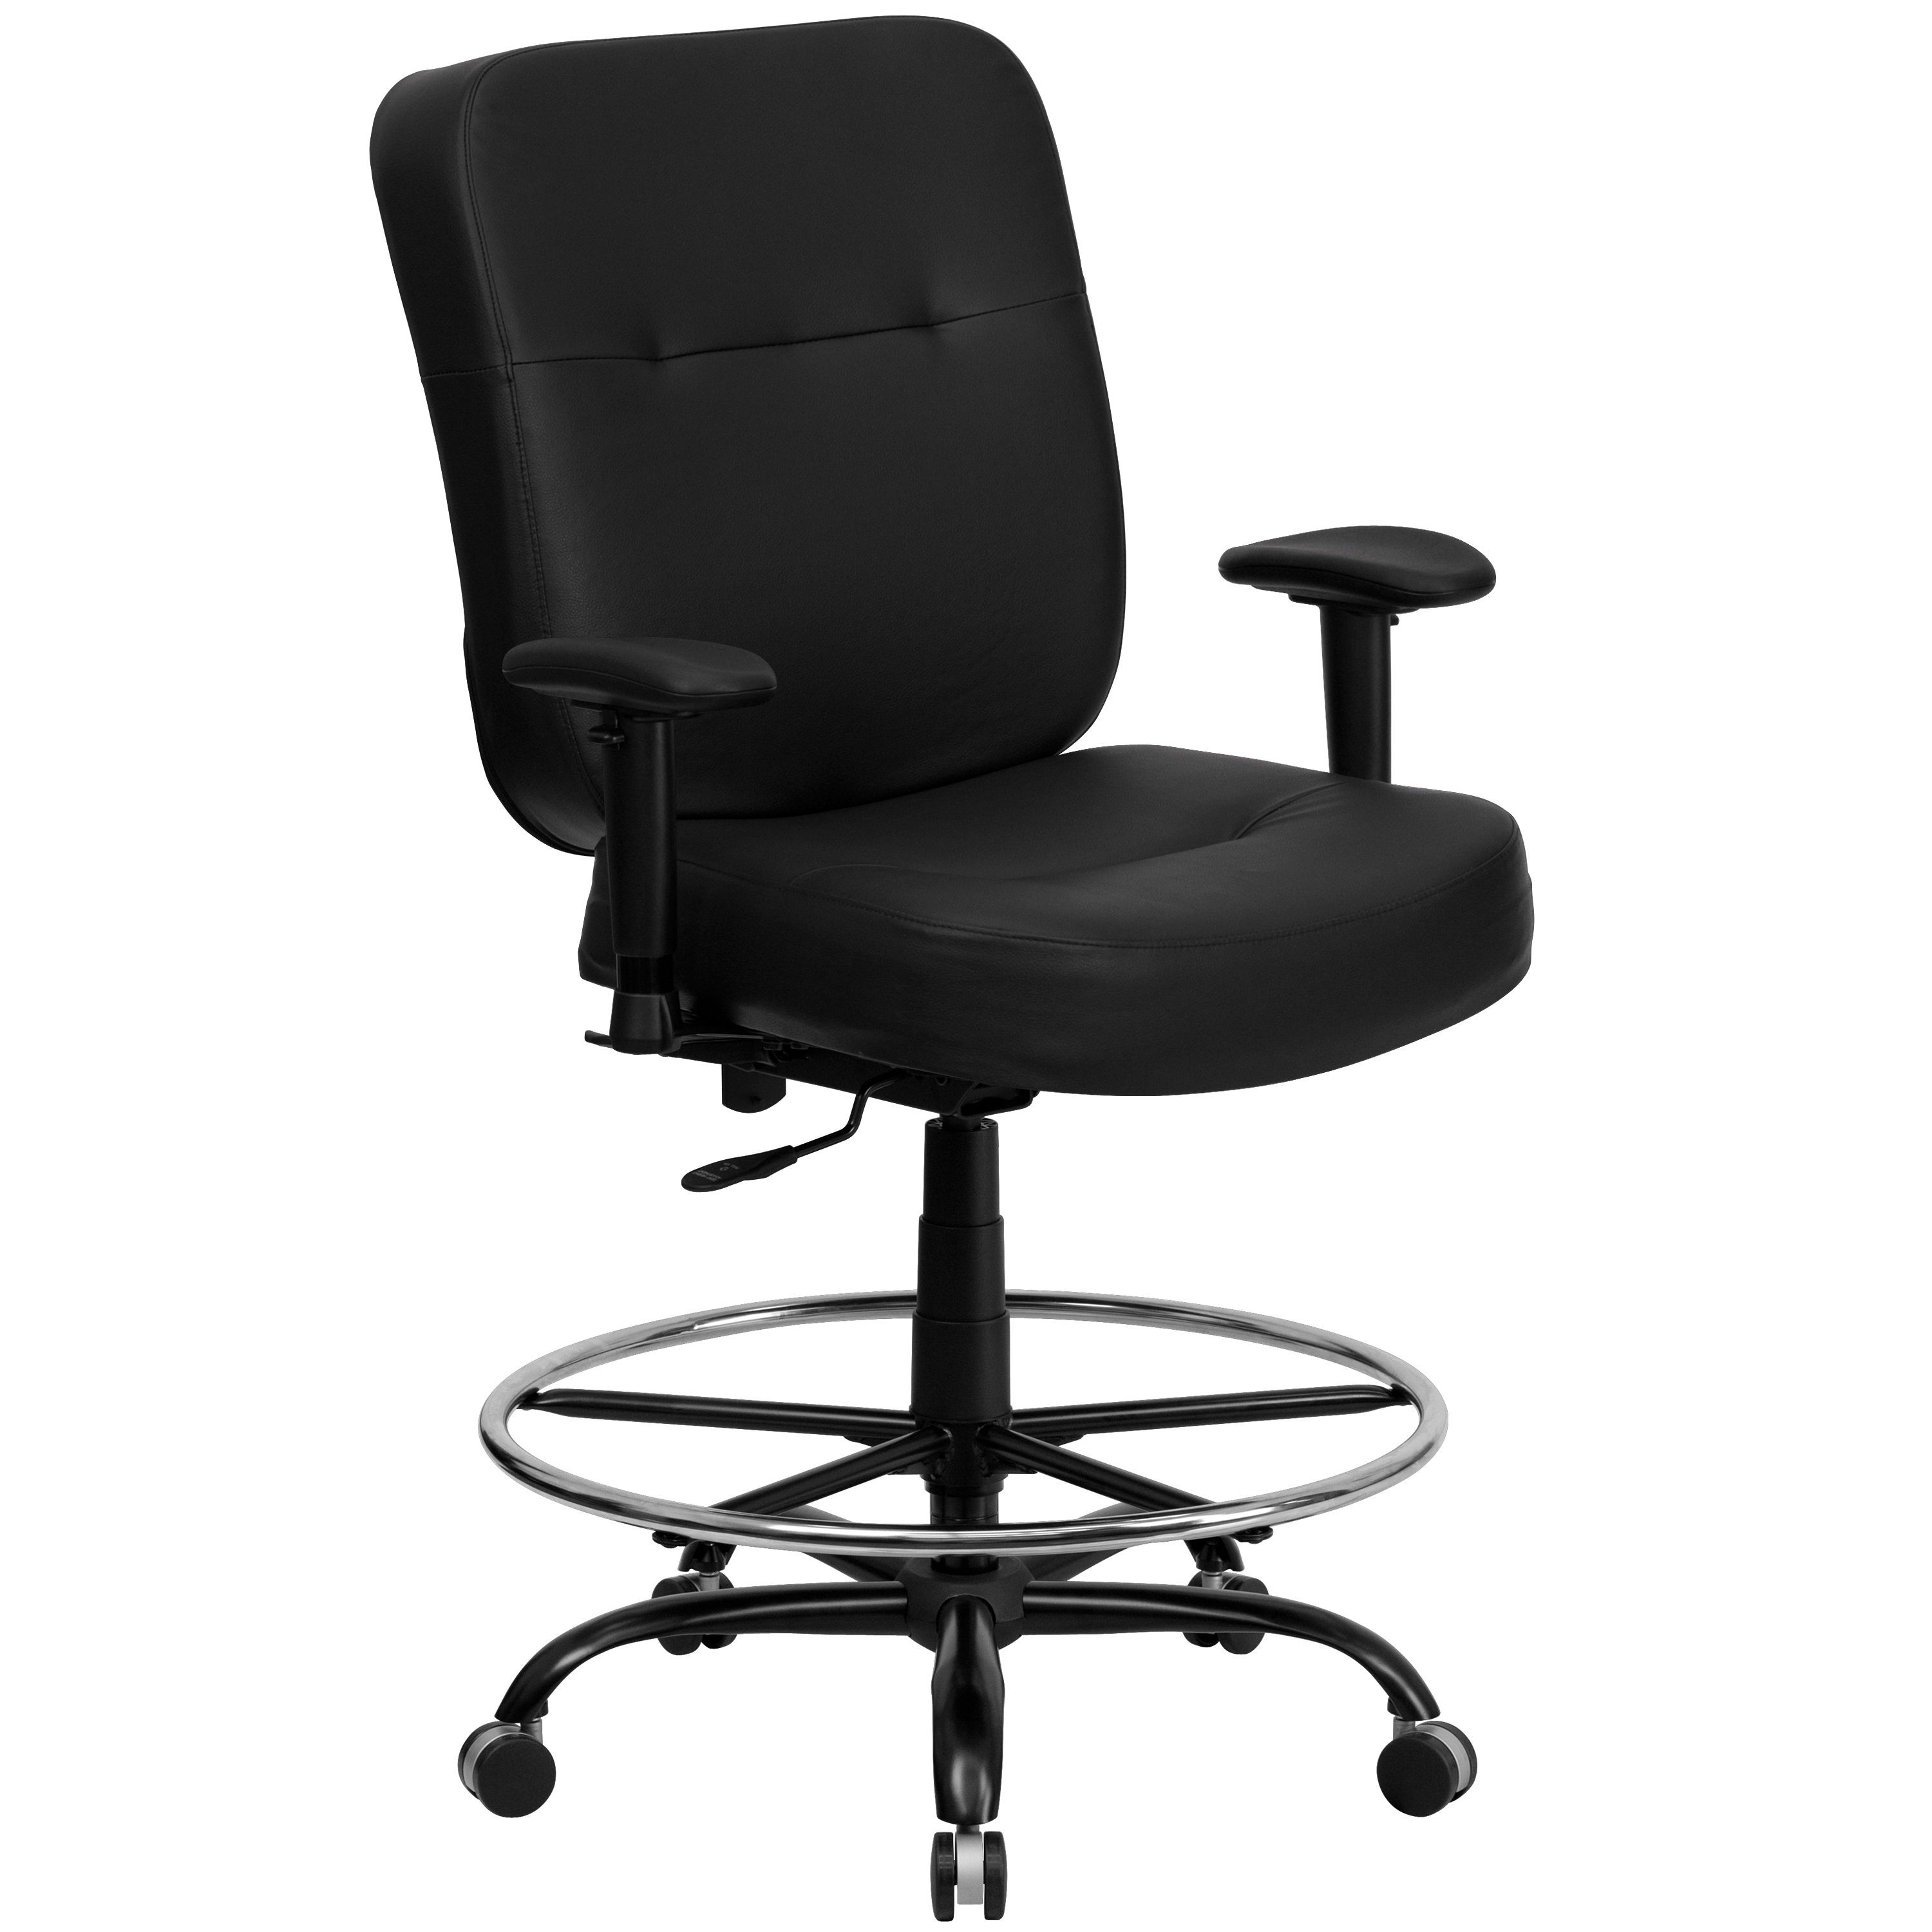 Flash Furniture WL-735SYG-BK-LEA-AD-GG HERCULES Series 400 Lb. Capacity Big & Tall Black Leather Drafting Chair with Arms and Extra Wide Seat